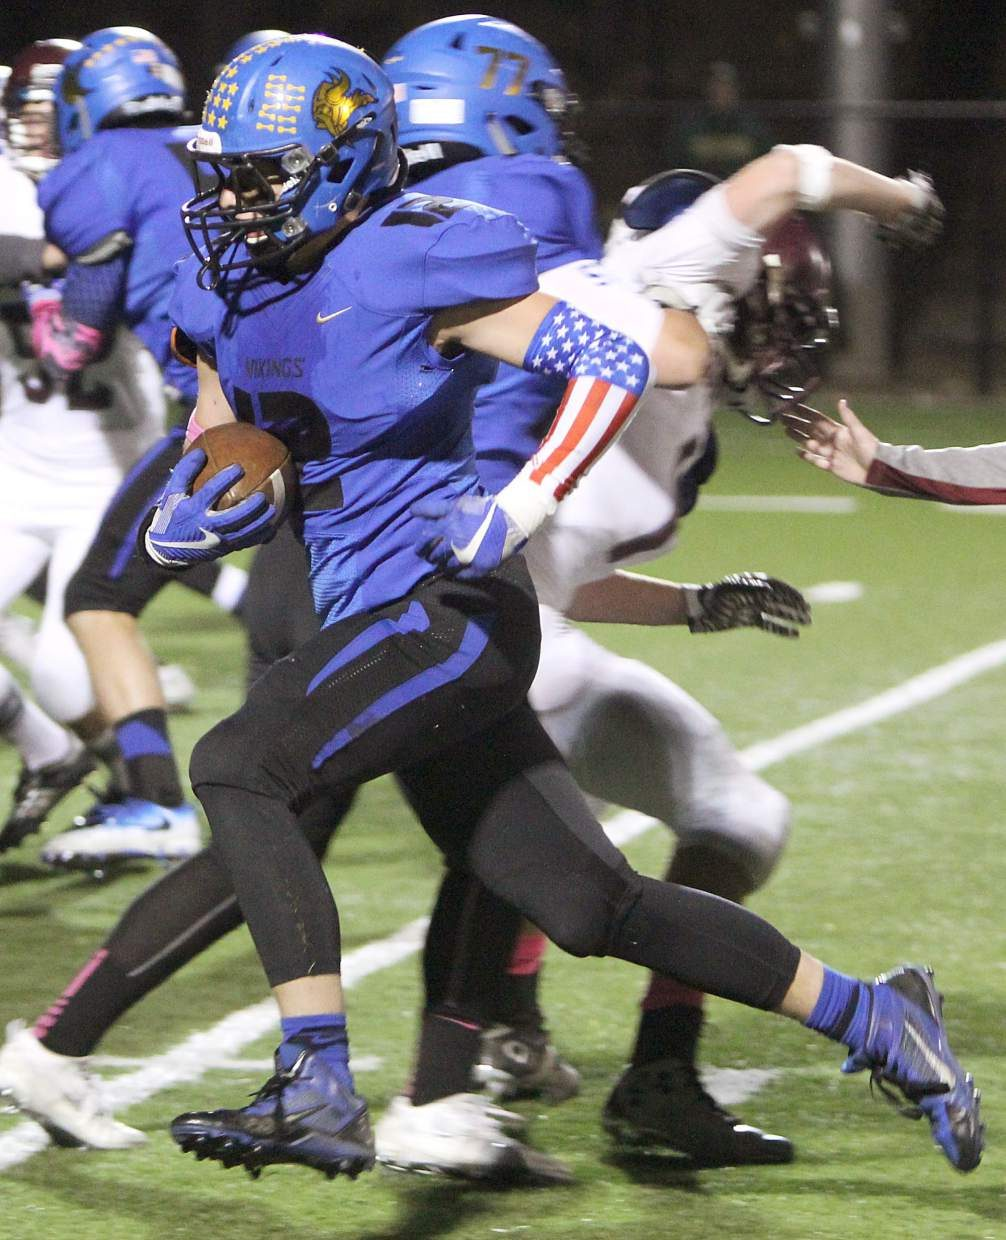 South Tahoe senior Max Schweitzer rumbles for yards during the Vikings' homecoming game against Dayton on Friday, Oct. 7, at Viking Stadium.